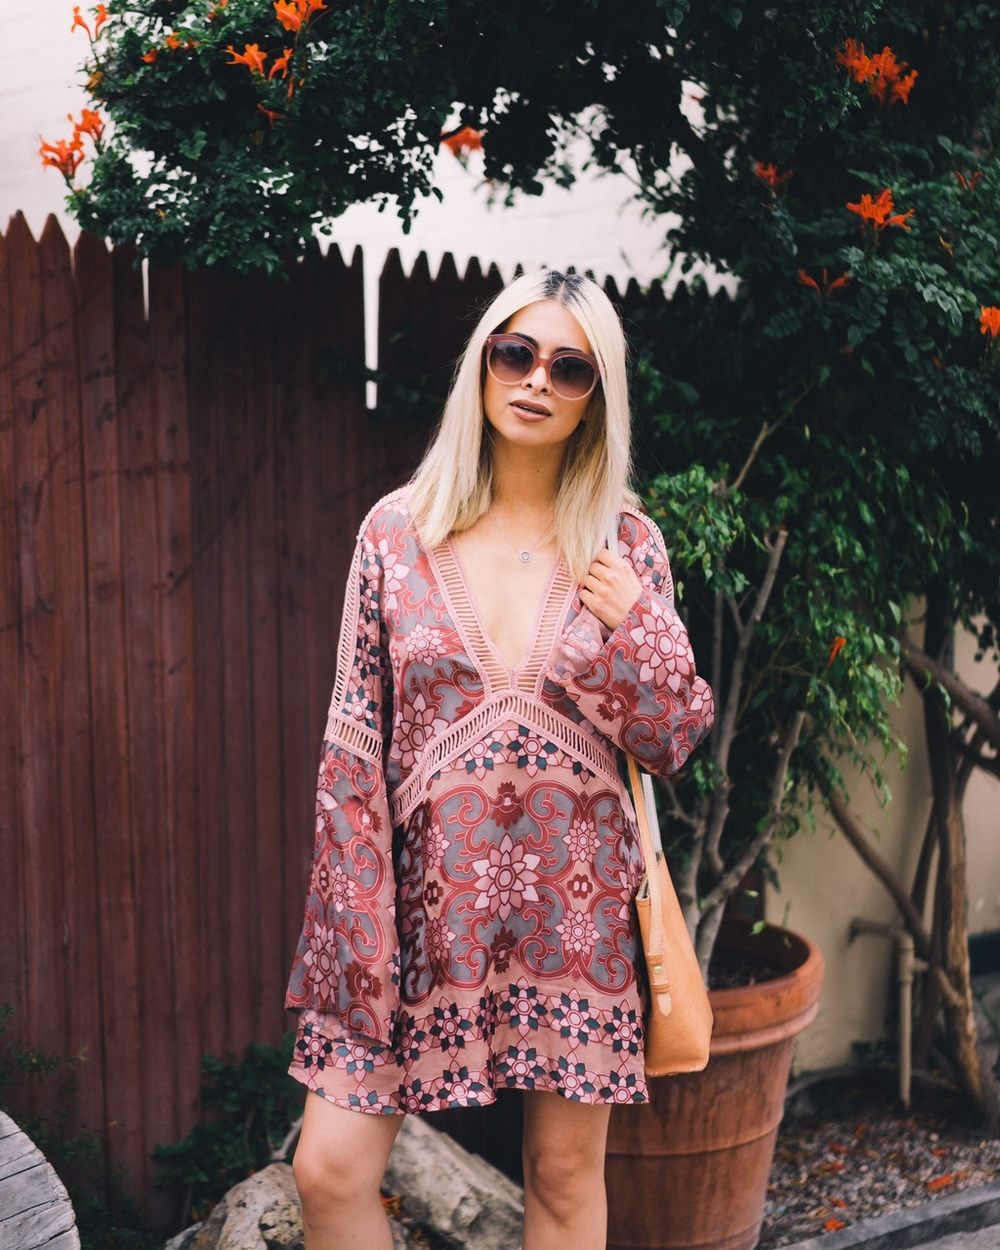 for love and lemons_nordstrom_barcelona trapeze dress_icy blonde hair_kim kardashian blonde hair_bohemian woman_newport beach_oc blogger_best oc blogger_street style_la blogger_savvy javvy_journeywithjavvy